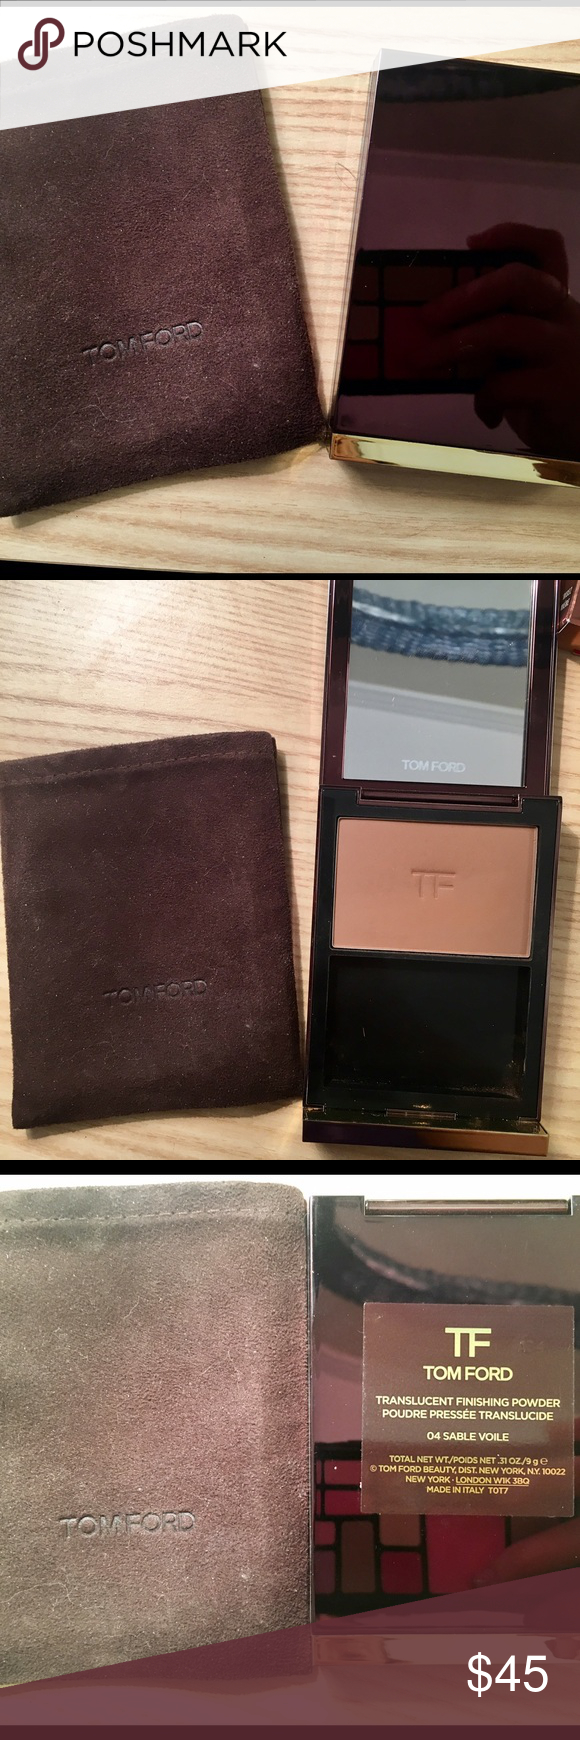 91be76994ed00 Tom Ford Translucent Finishing Powder Shade is 04 Sable Voile ...